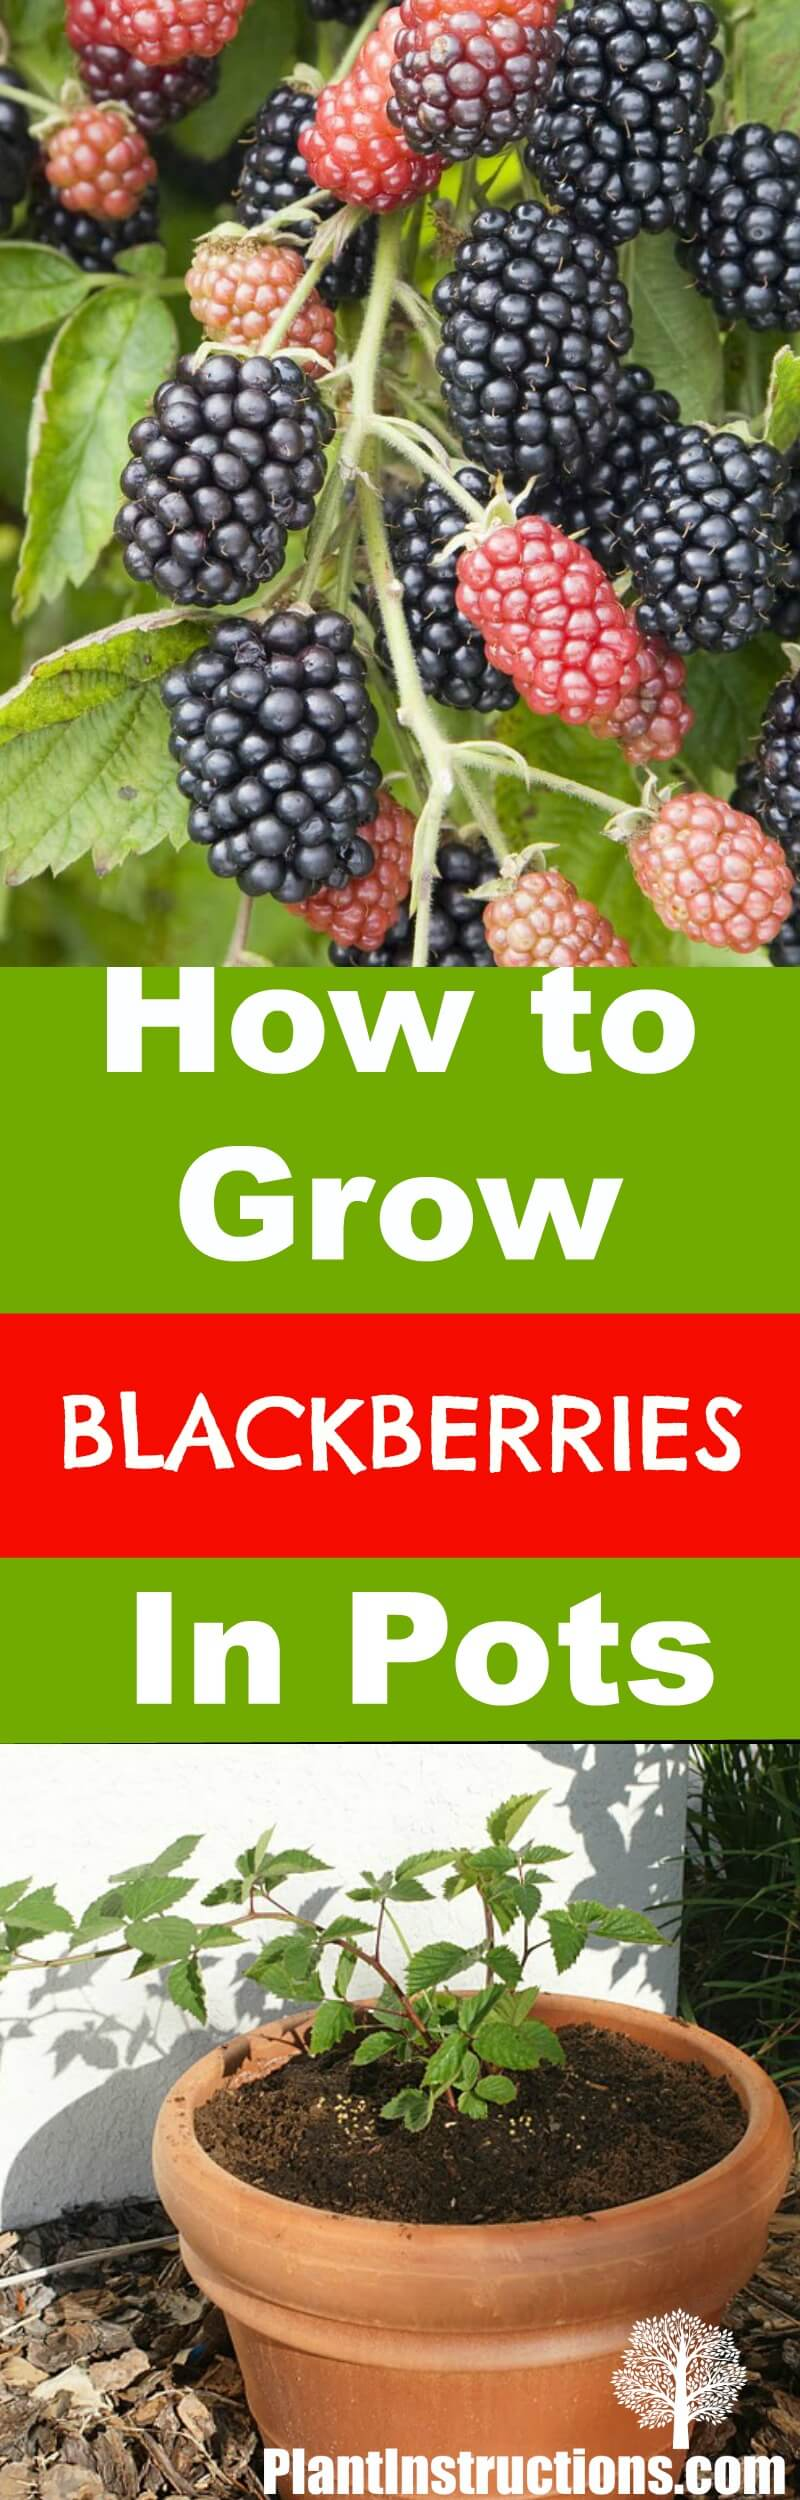 grow blackberries in pots